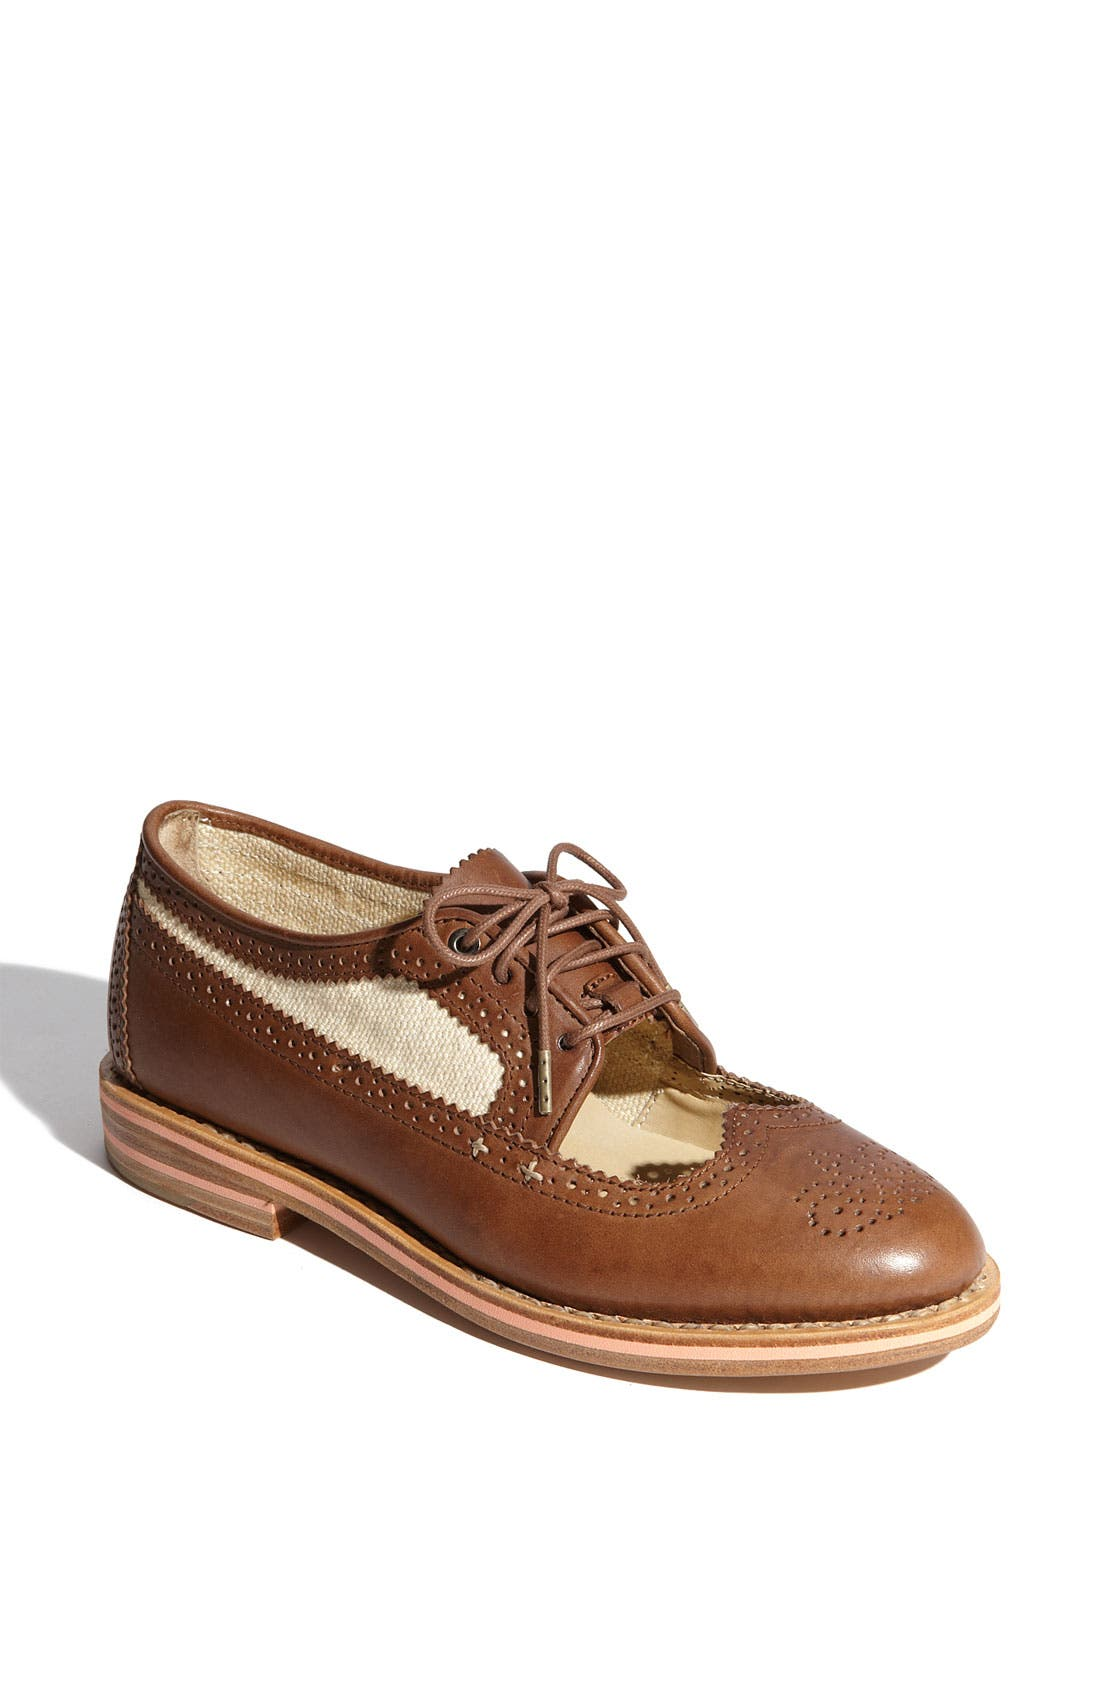 Alternate Image 1 Selected - rag & bone 'Bradford' Brogue Oxford